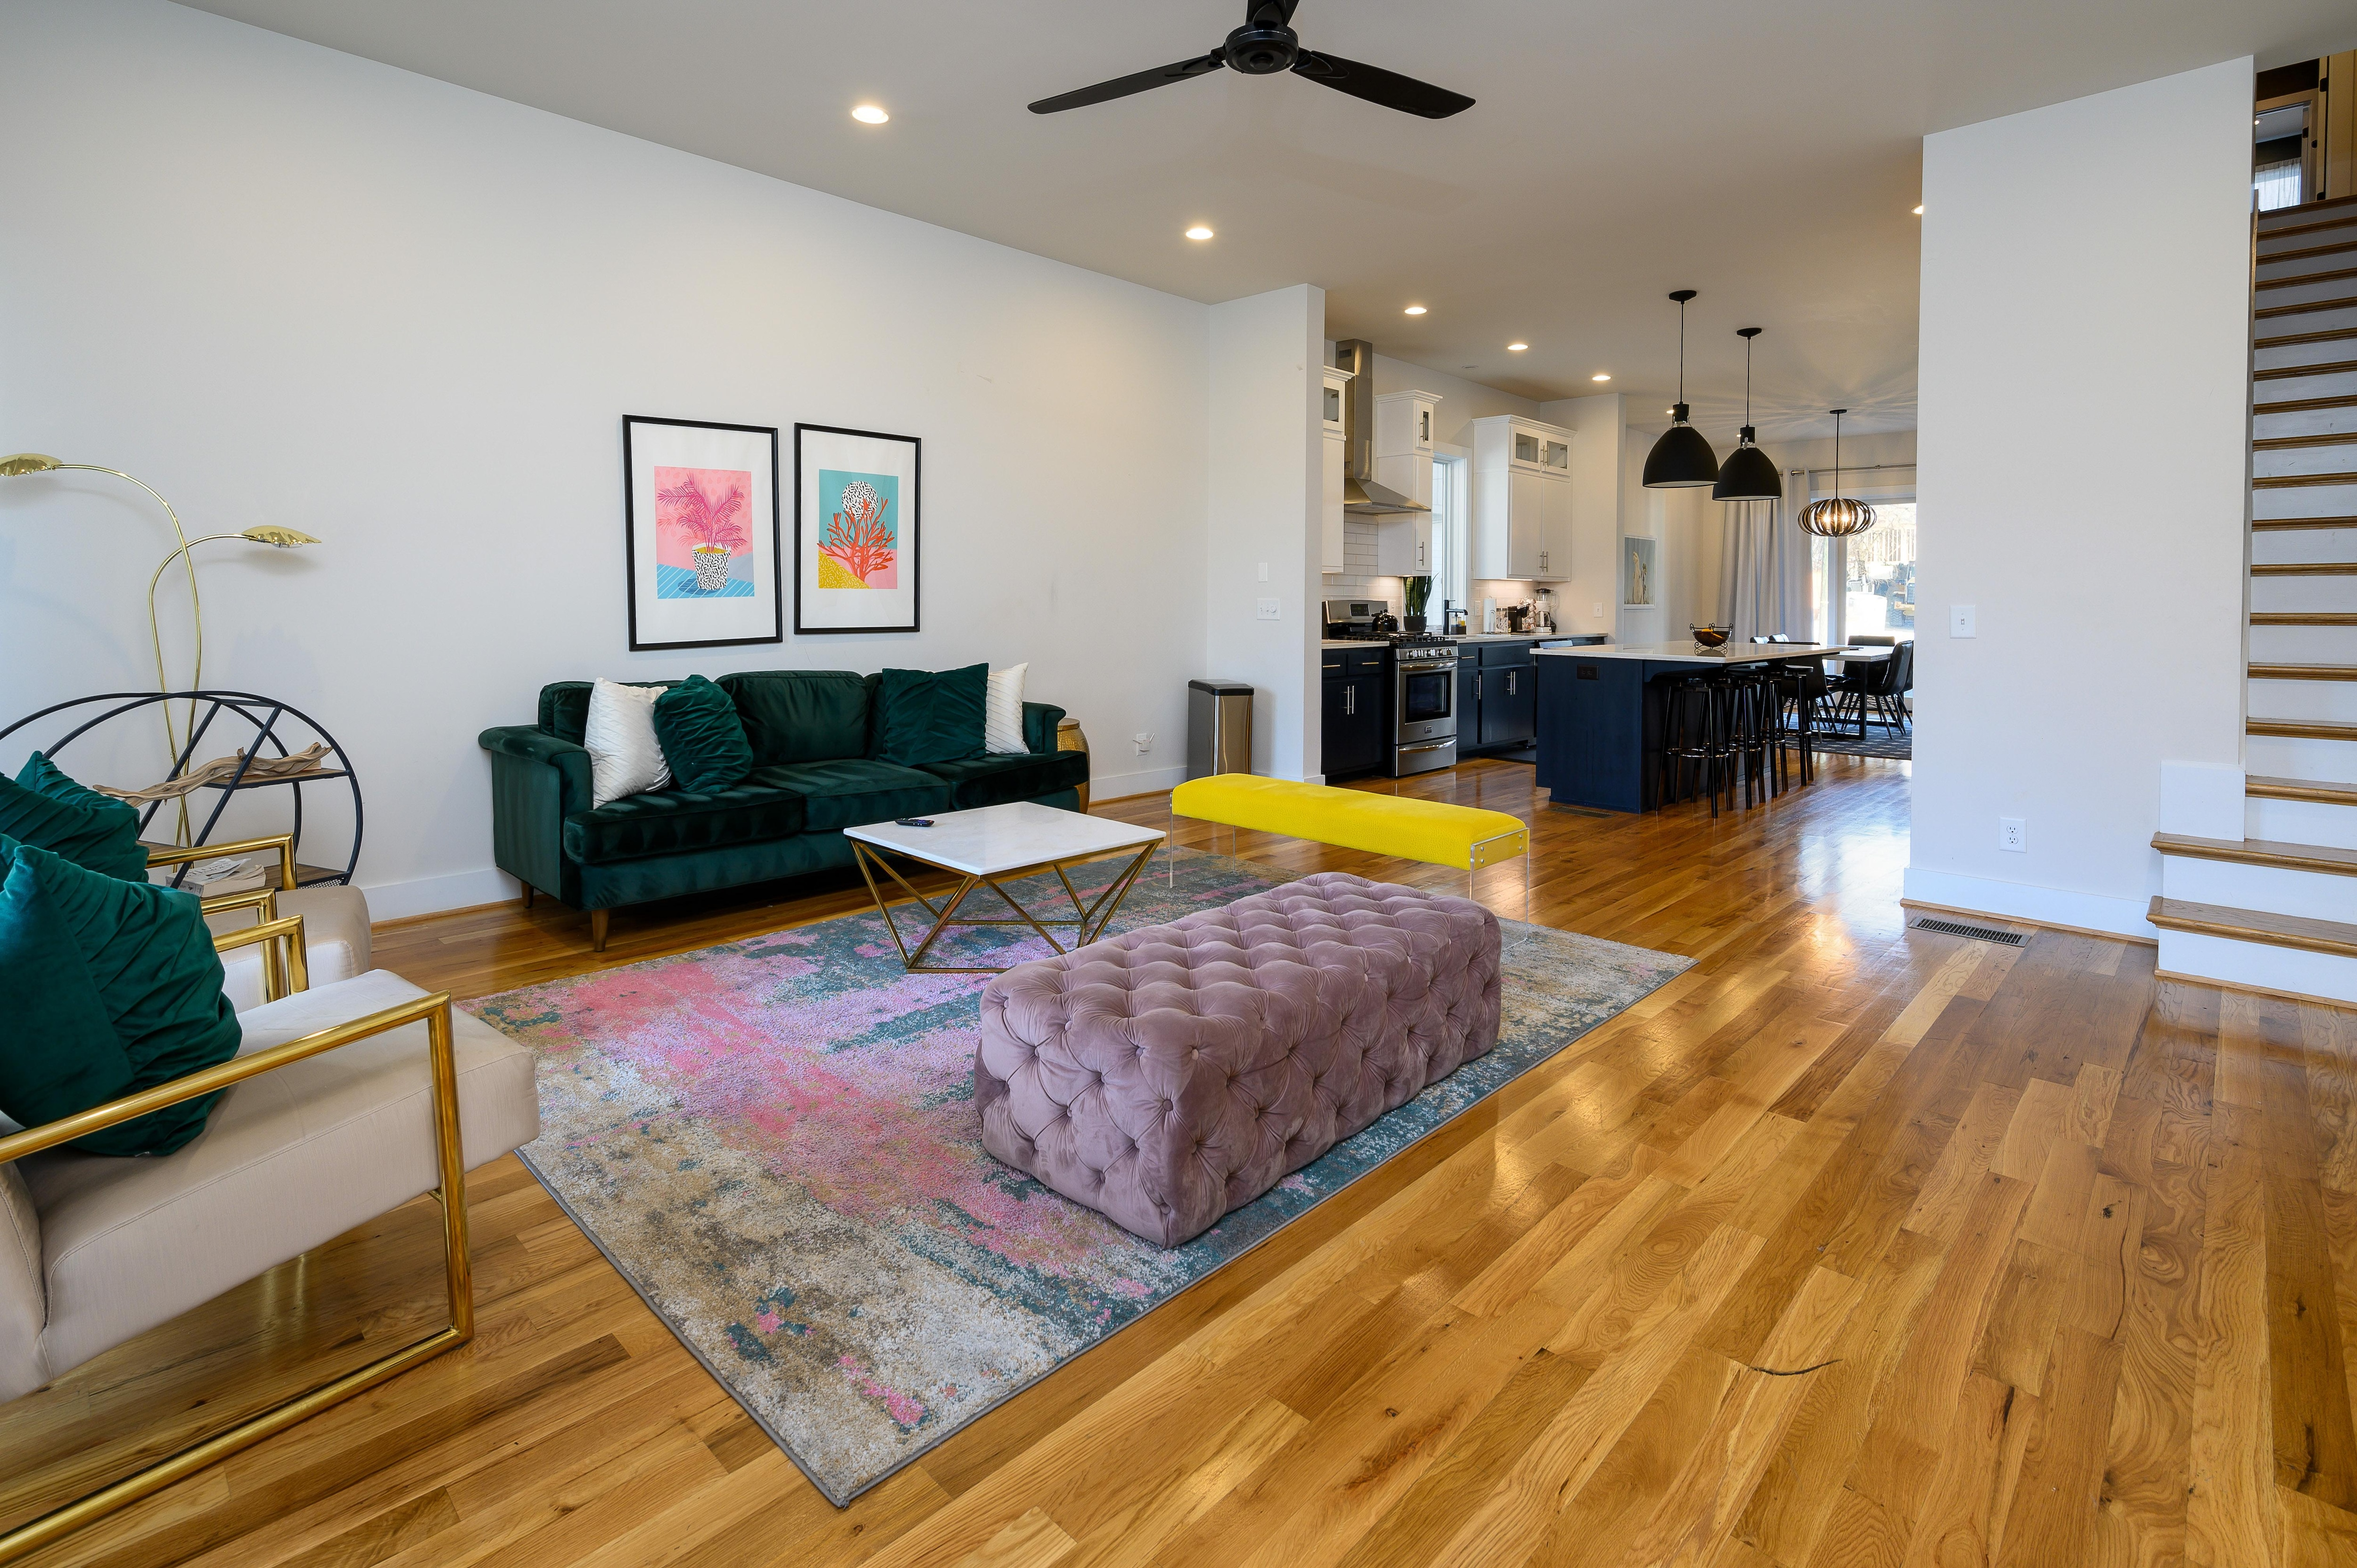 Welcome to Nashville! This home is professionally managed by TurnKey Vacation Rentals.